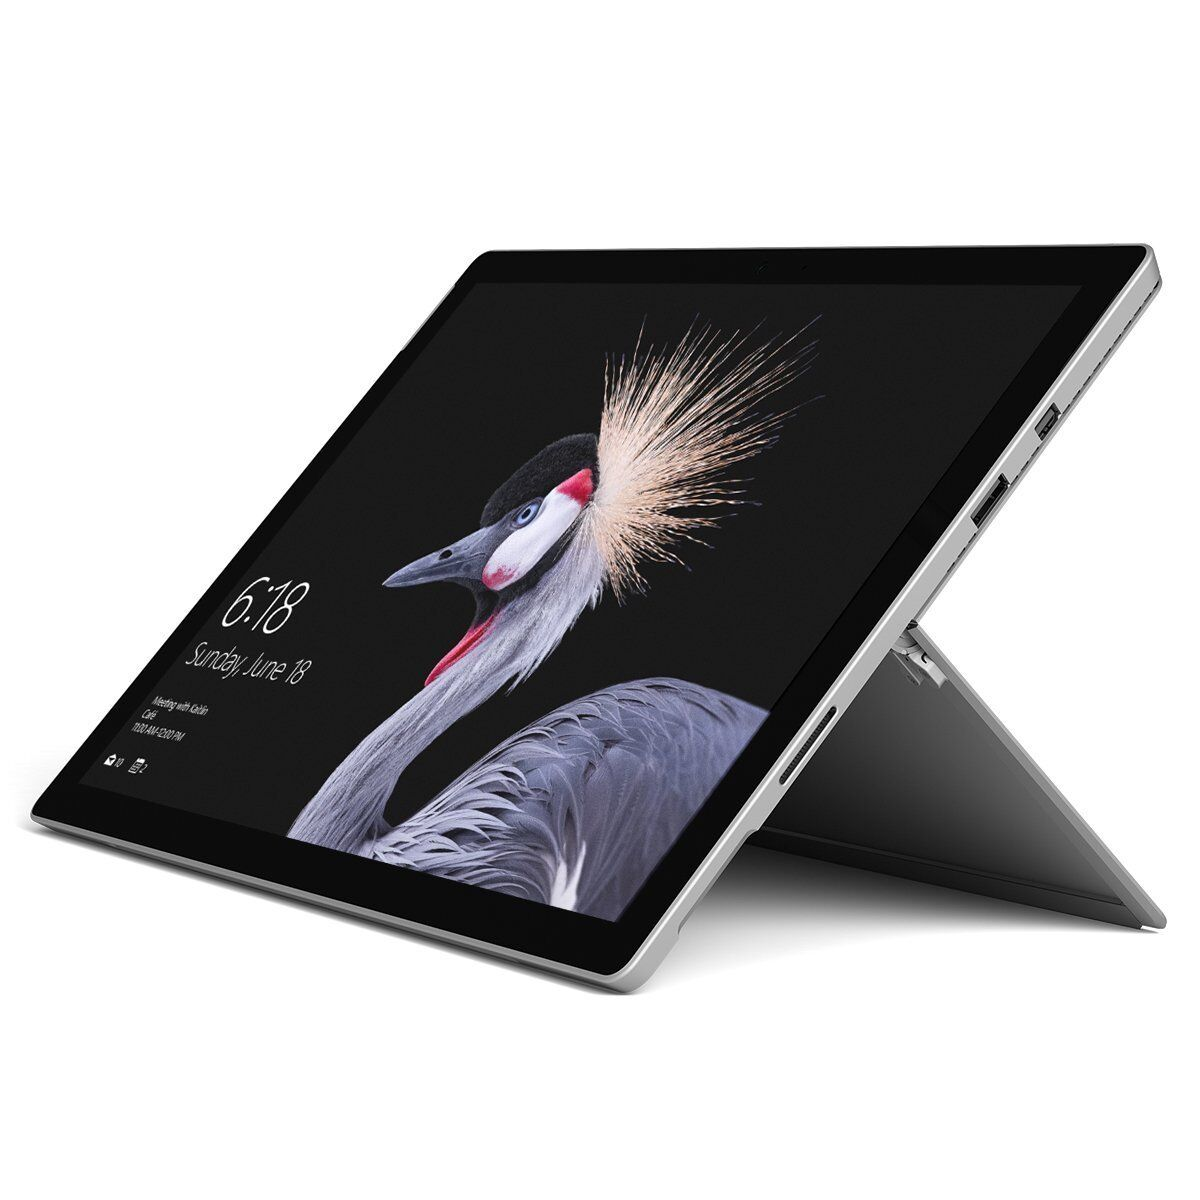 NEW Microsoft Surface Pro (newest version) Intel Core i5 / 256GB SSD / 8GB RAM